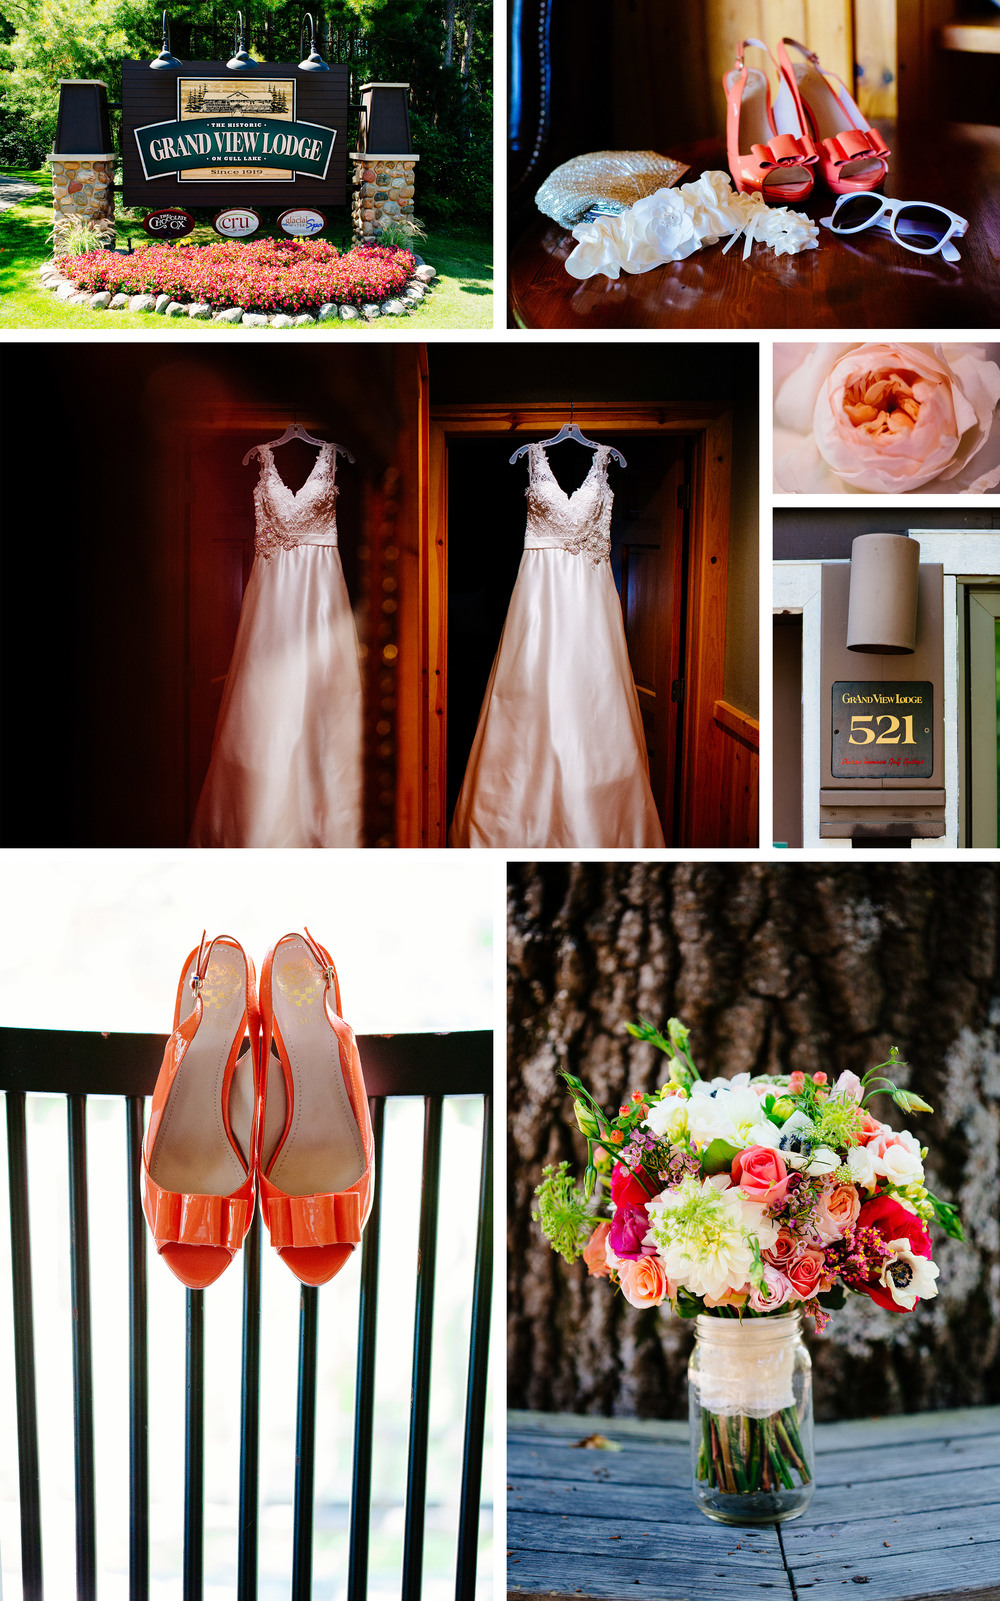 Grandview_Lodge_Wedding_02.jpg